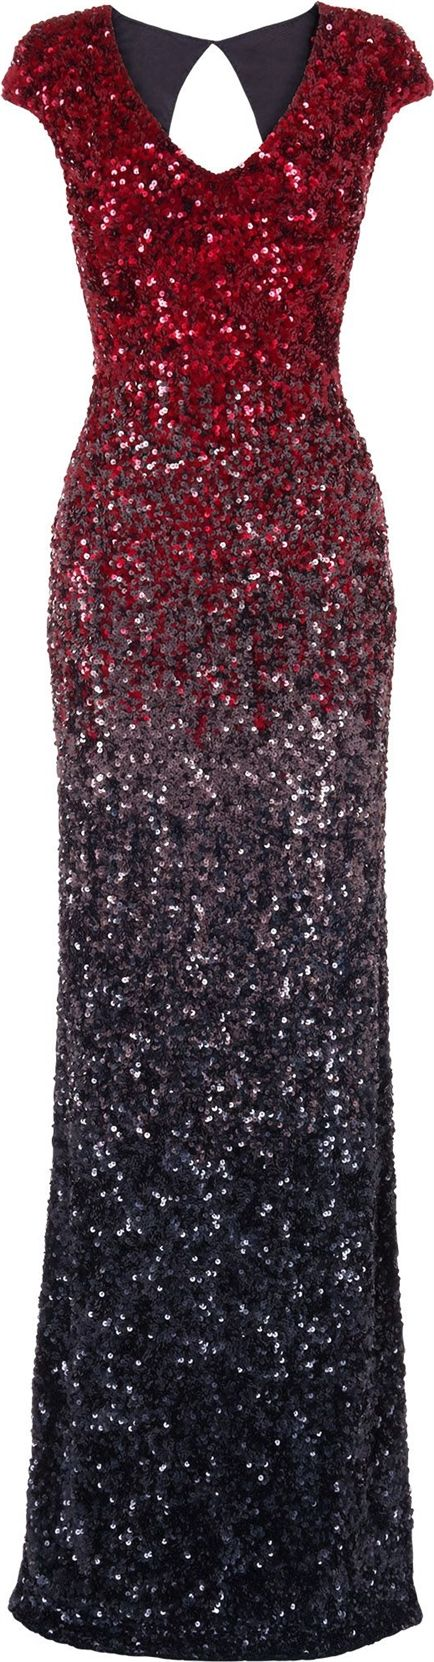 Phase Eight Phase Eight Collette sequin full length dress, Ruby